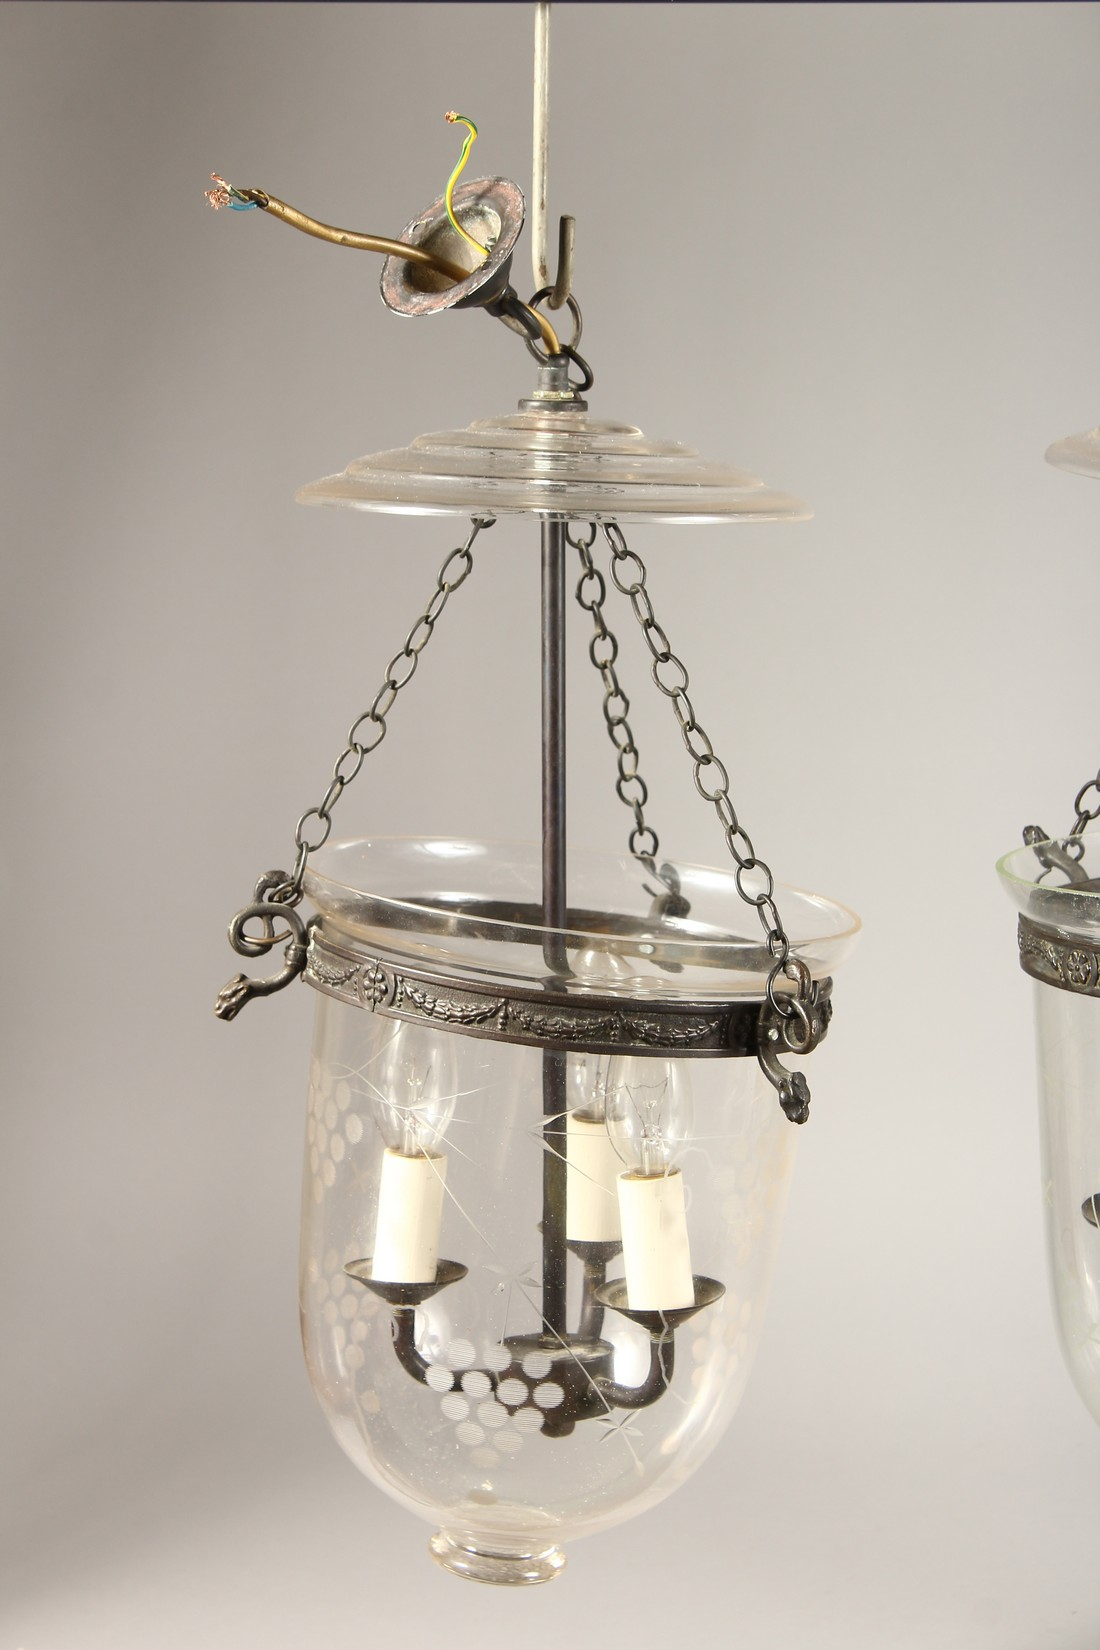 A SET OF THREE ETCHED GLASS AND METAL THREE LIGHT HANGING LANTERNS 20ins high. - Image 3 of 6